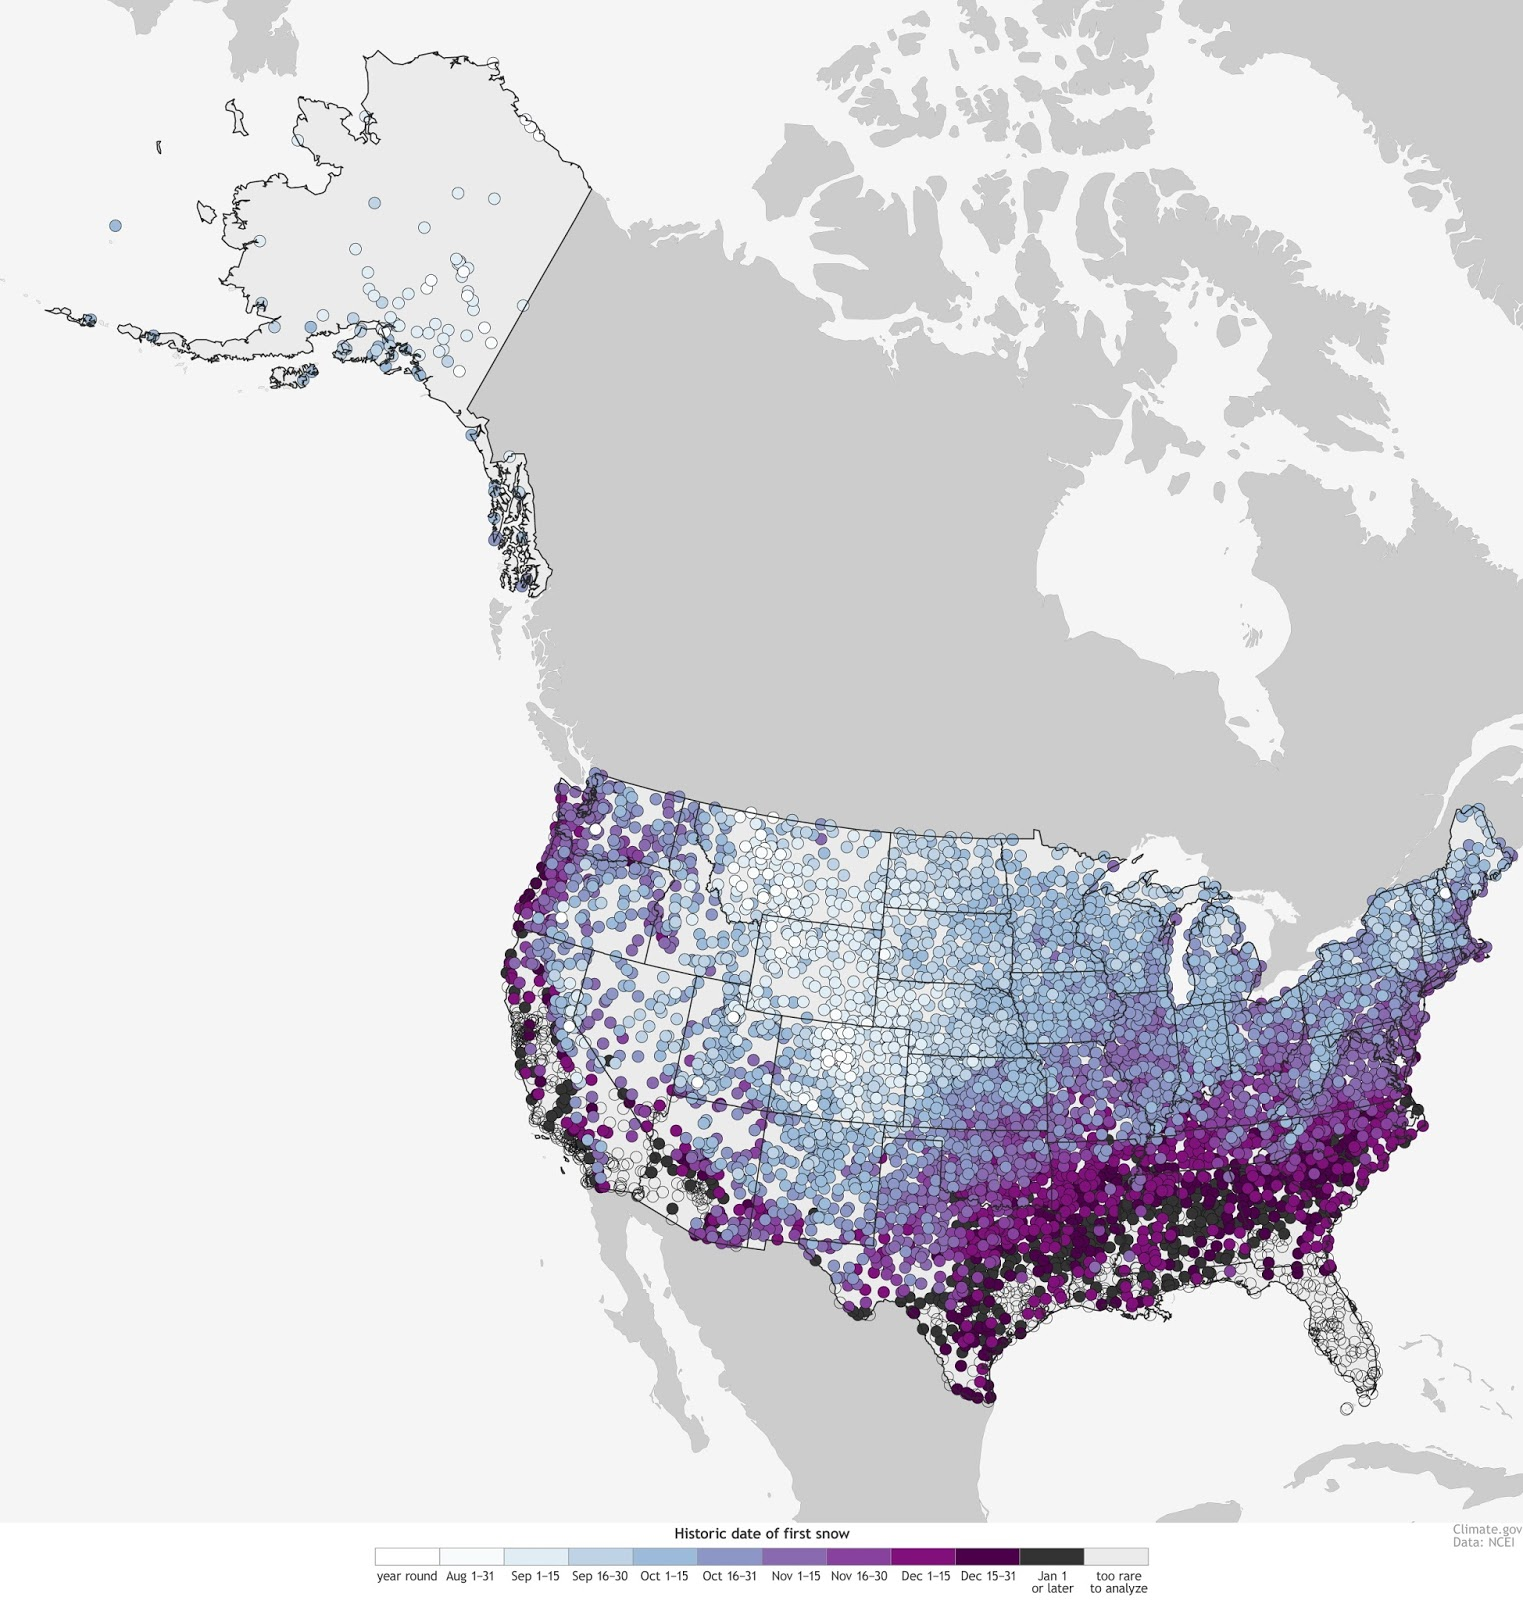 First snow dates in the U.S.